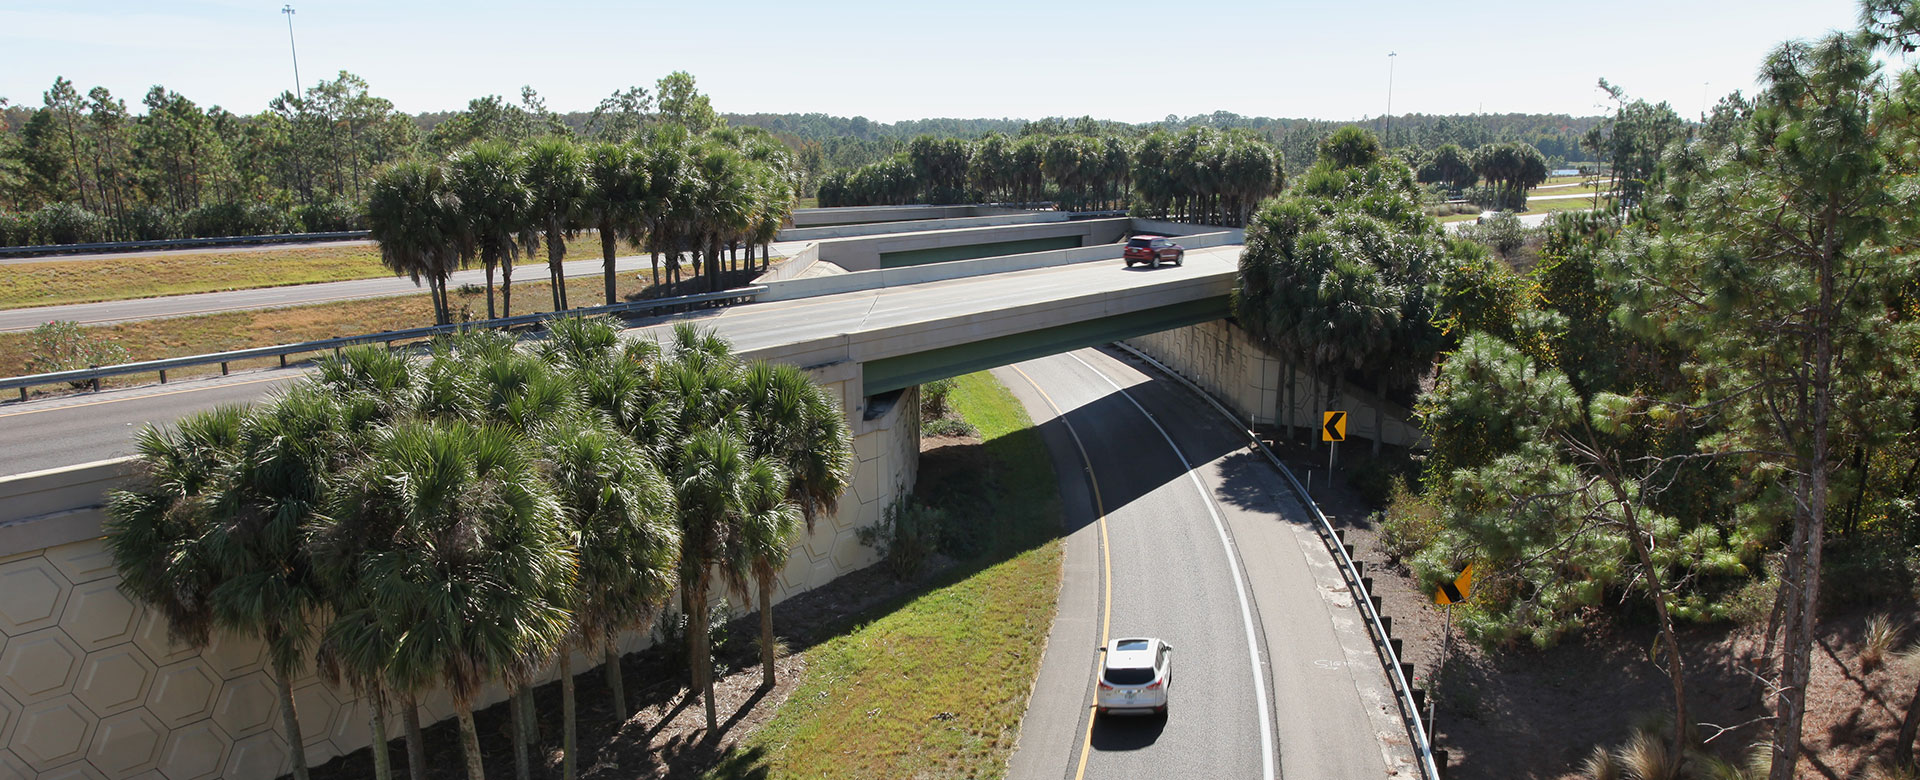 Central Florida Expressway overpass